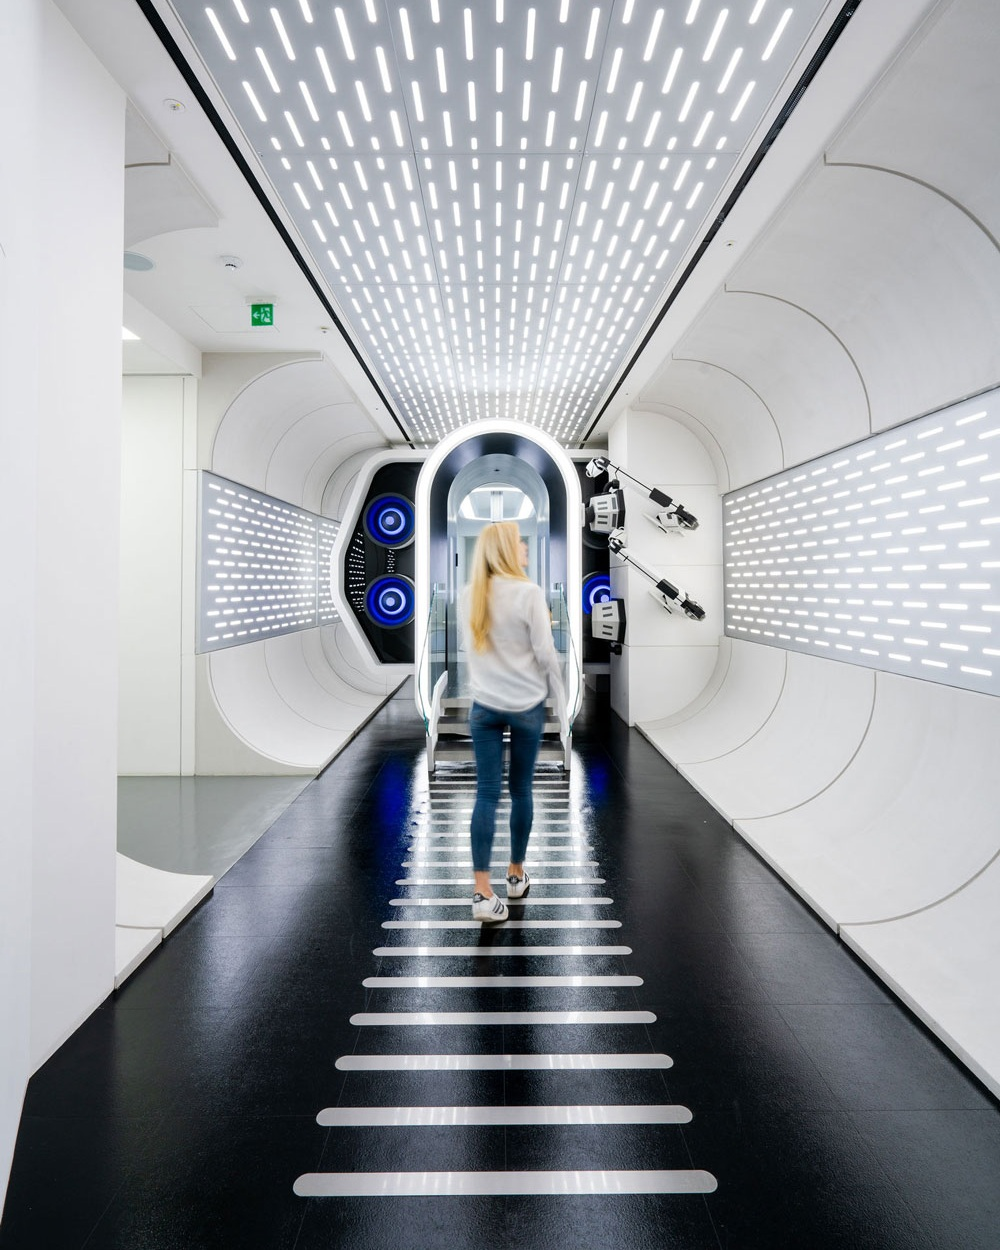 T.um Technology Museum Offers A Spectacular Glimpse Into The Future - Architecture // July 8, 2019